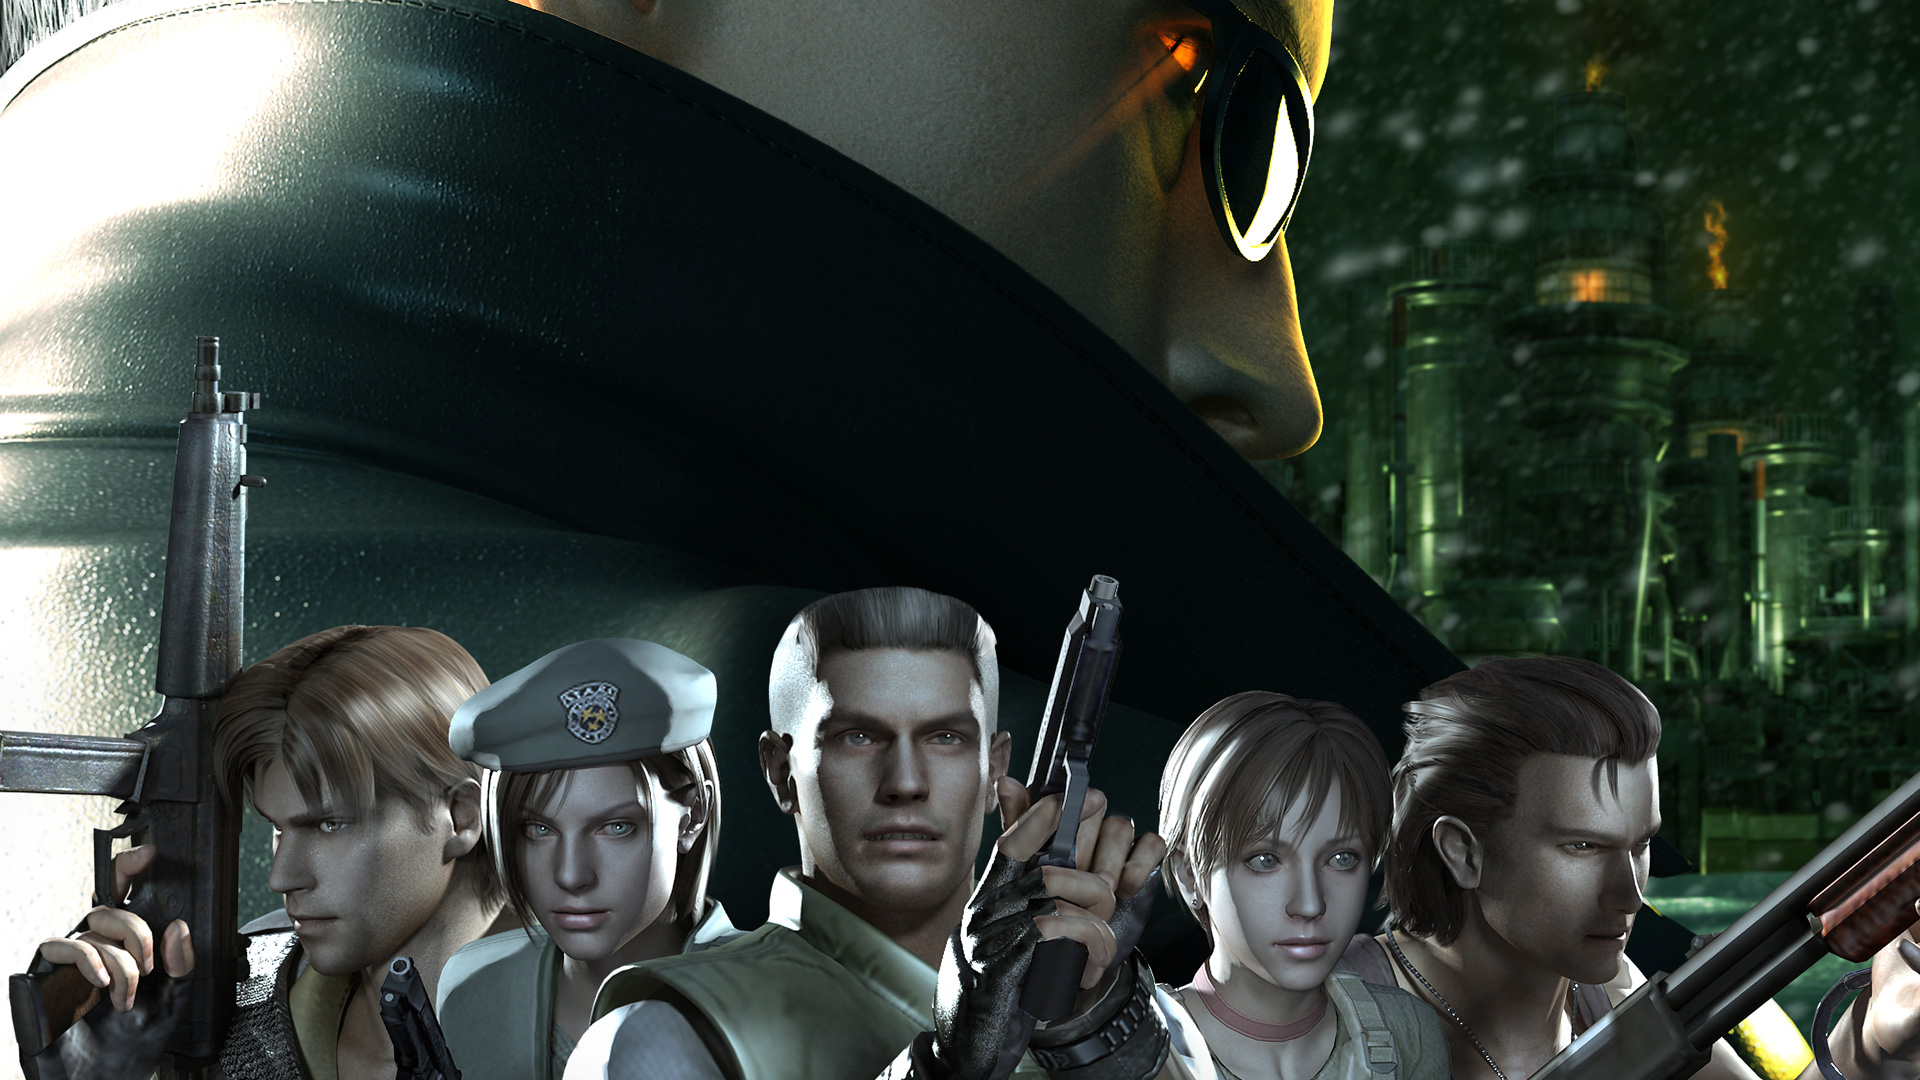 Free Resident Evil: The Umbrella Chronicles Wallpaper in 1920x1080